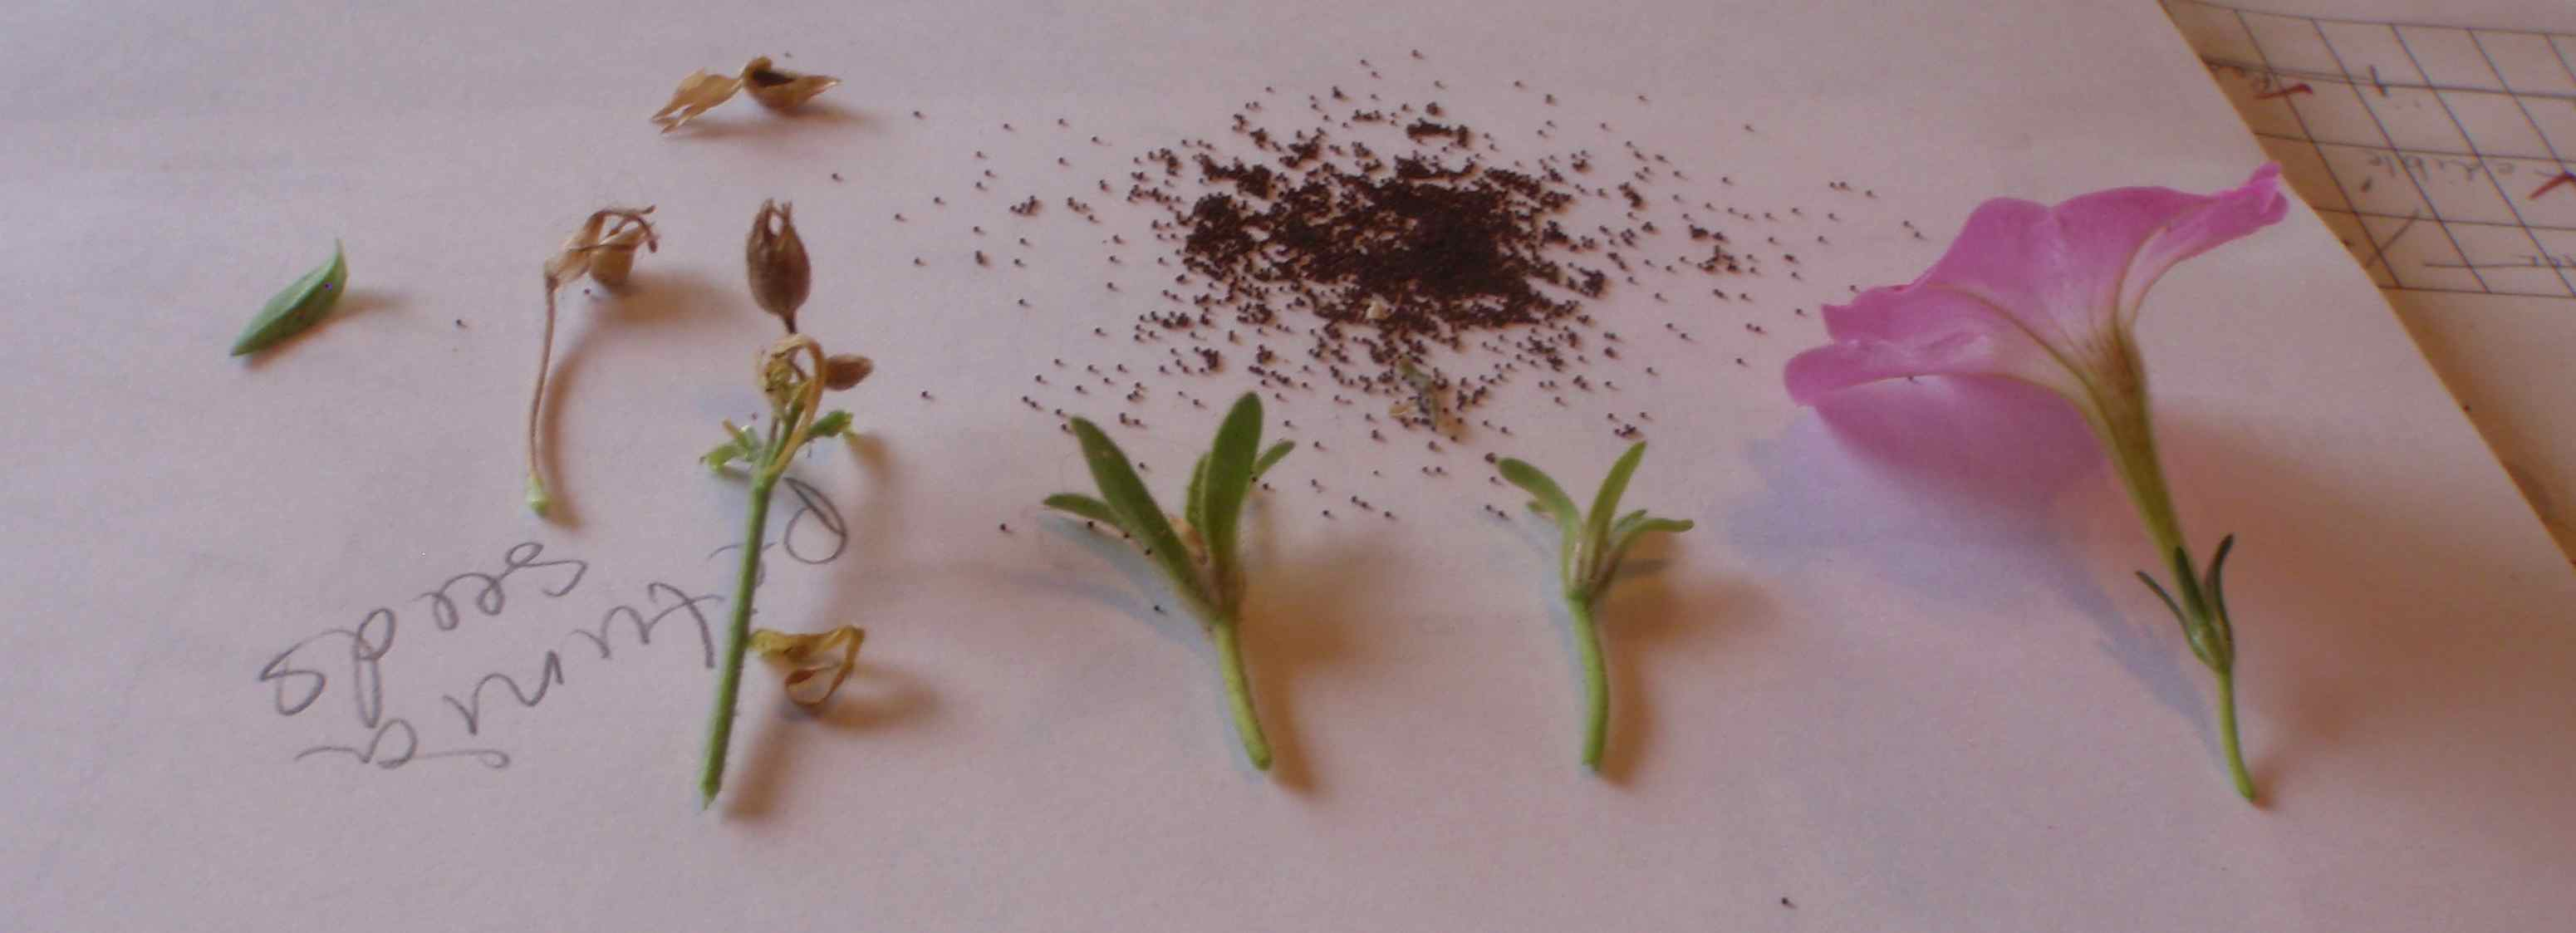 How to grow petunia from seeds - Vibrant Petunia To Empty Crisp Empty Seed Pod On The Far Left